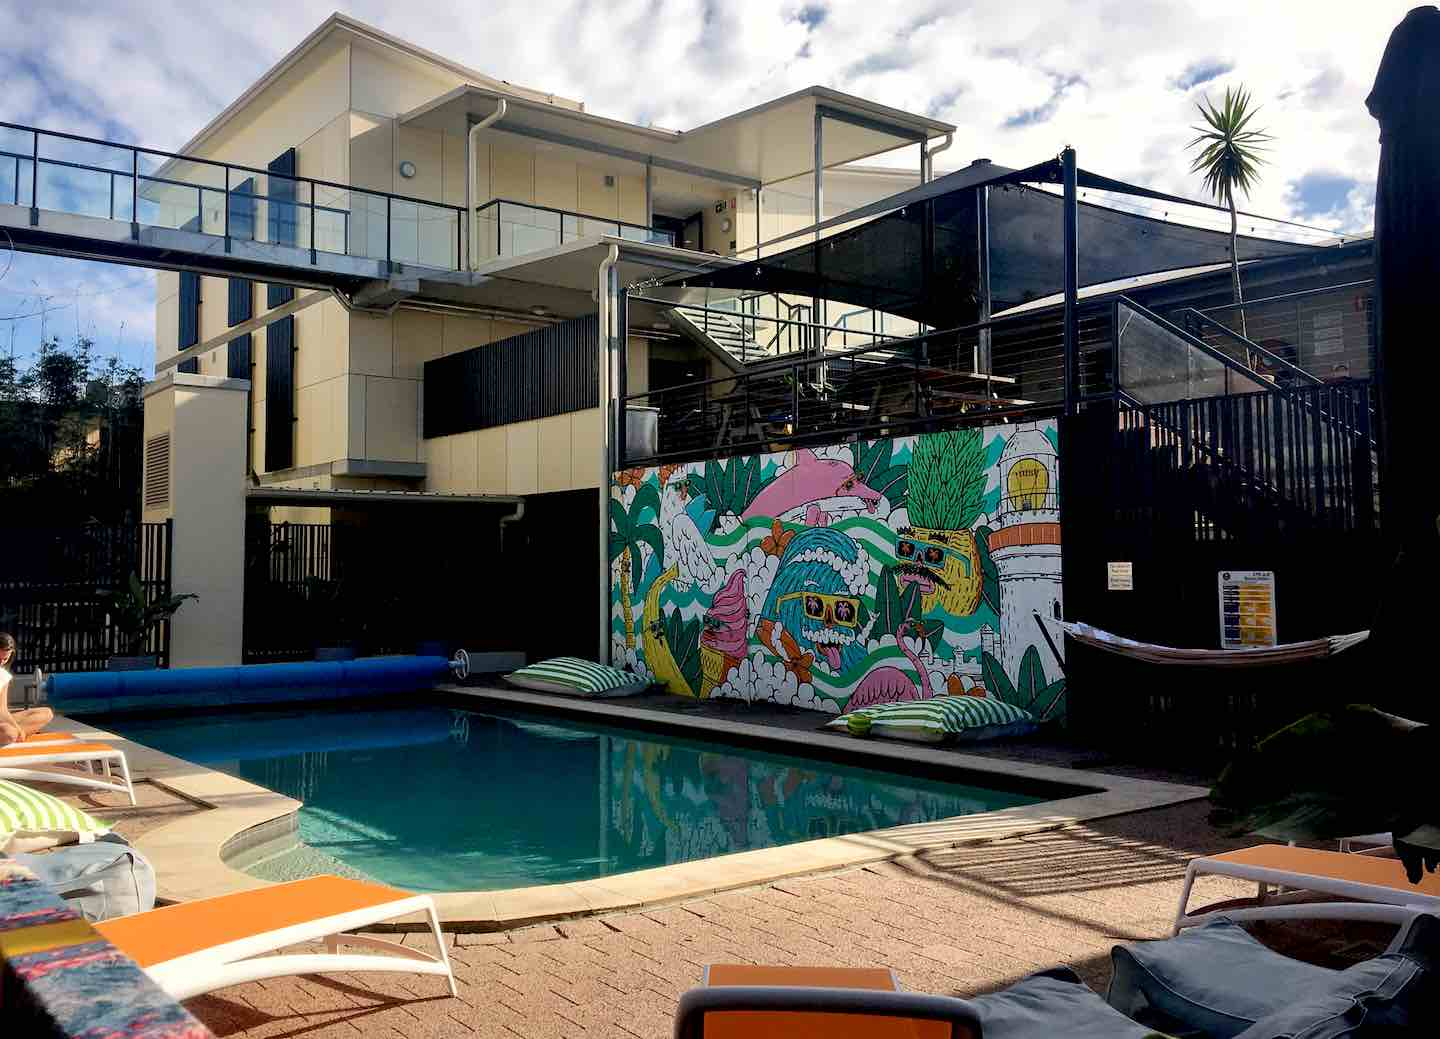 Image of Byron Bay YHA pool area | Image © ExpatAlli.com